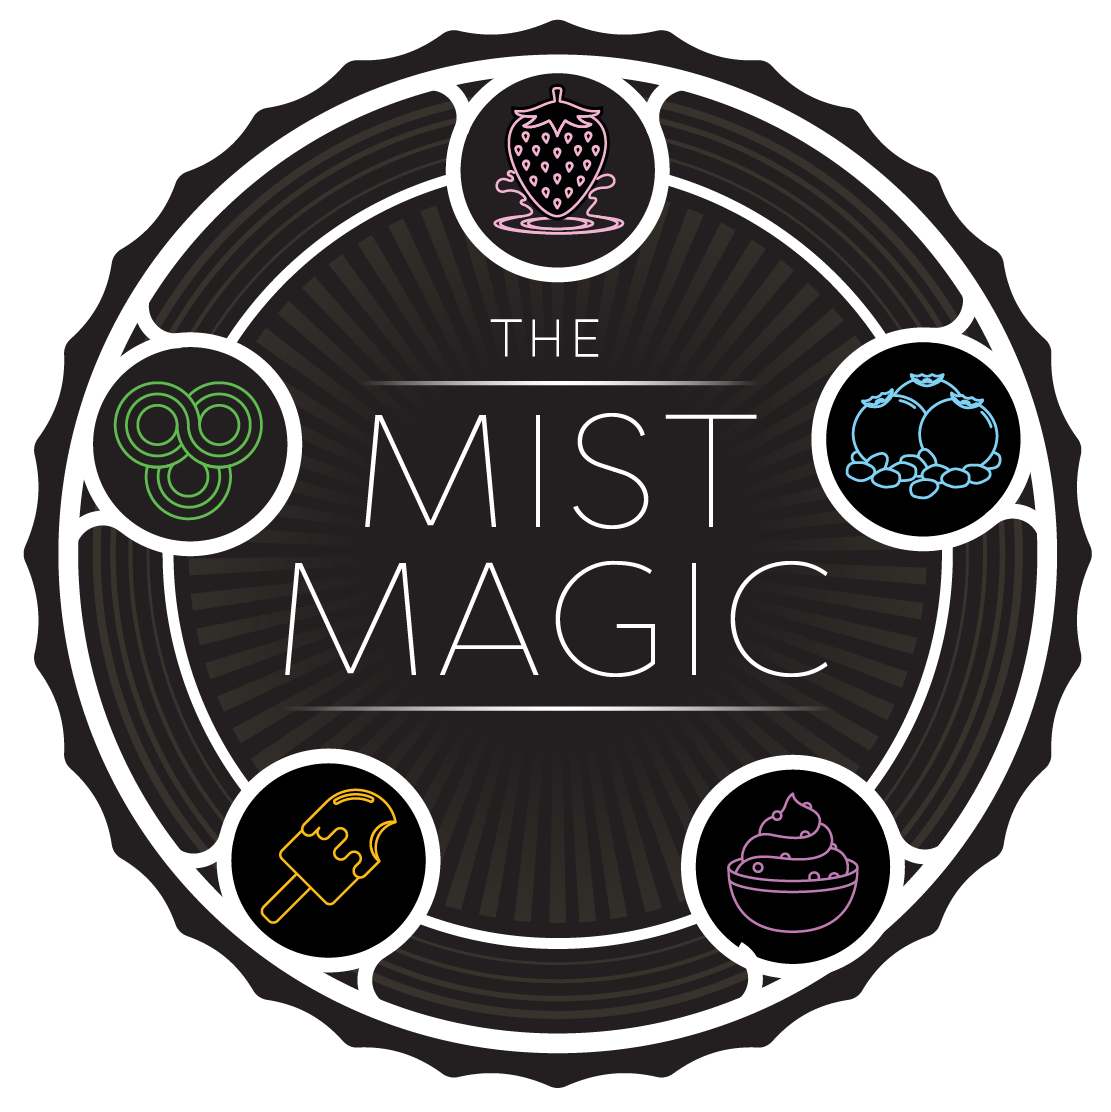 Mist Magic design